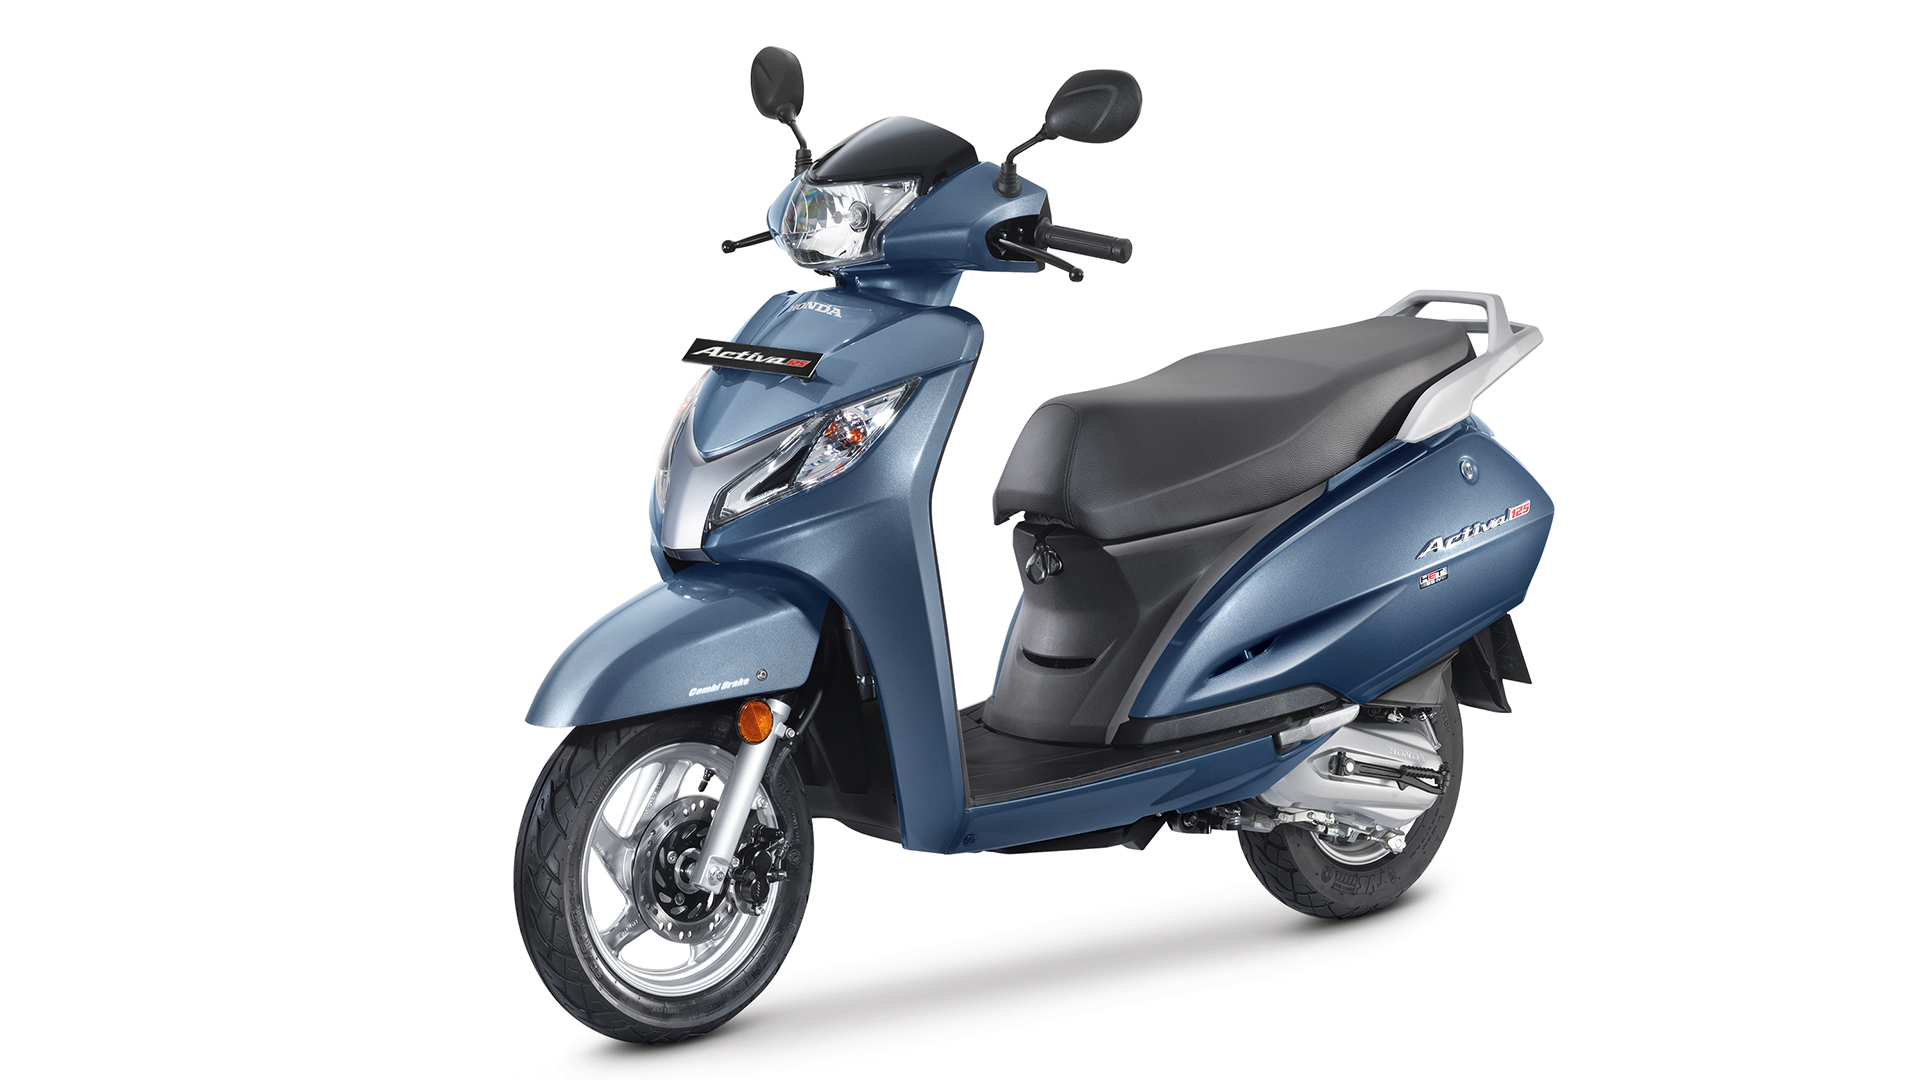 Ray Price Honda >> Honda Activa 125 2017 Alloy-Disc CBS - Price, Mileage, Reviews, Specification, Gallery - Overdrive